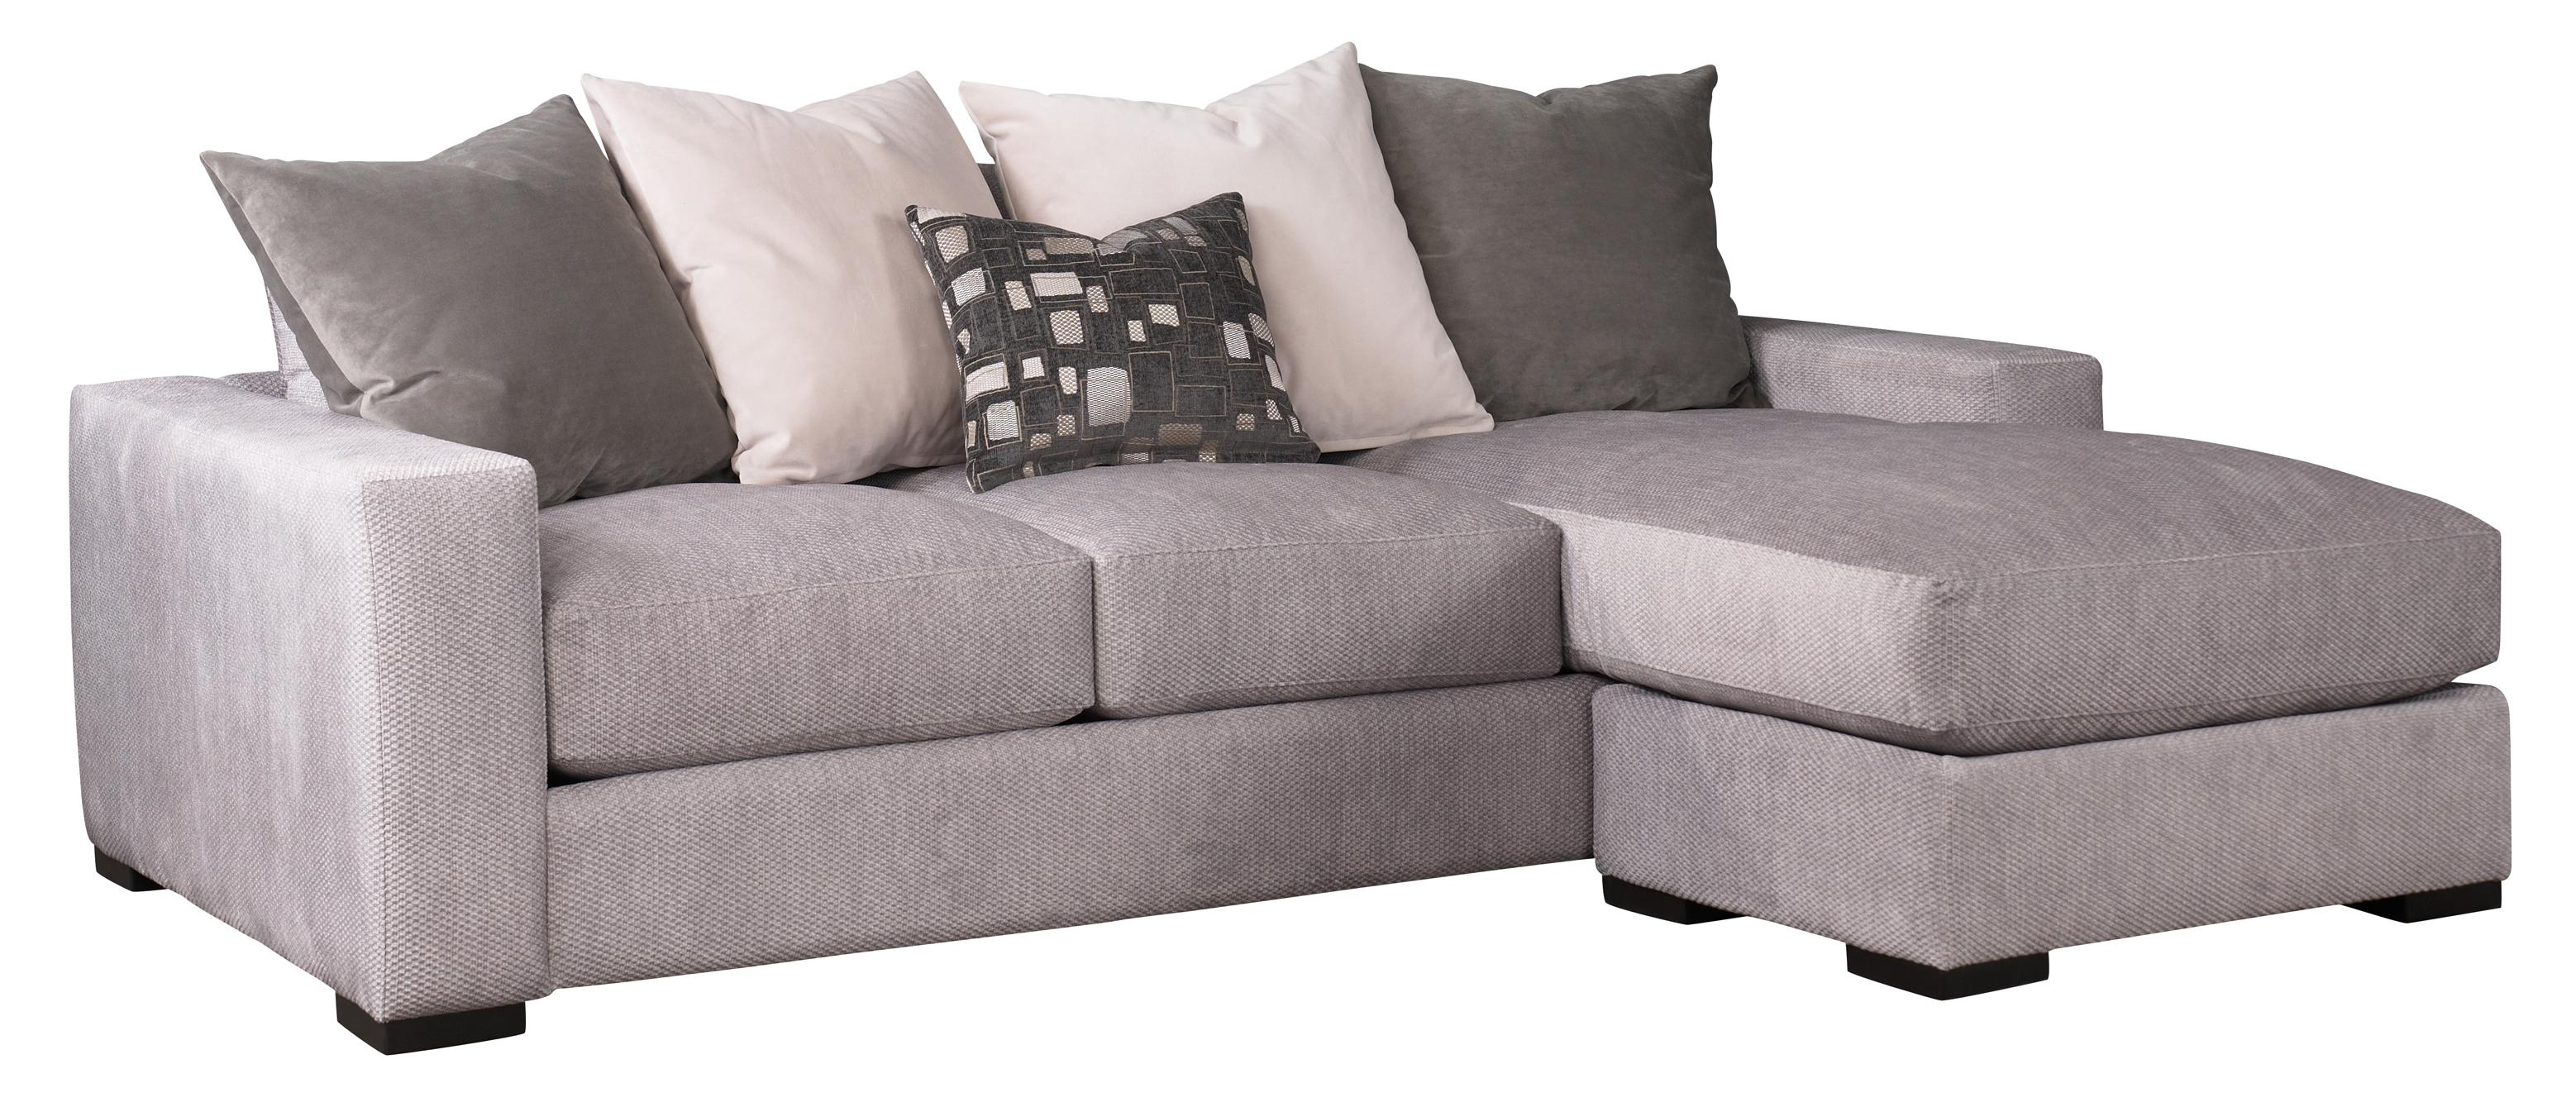 Jonathan Louis Lombardy Sofa W/ Reversible Chaise   Item Number: 33290